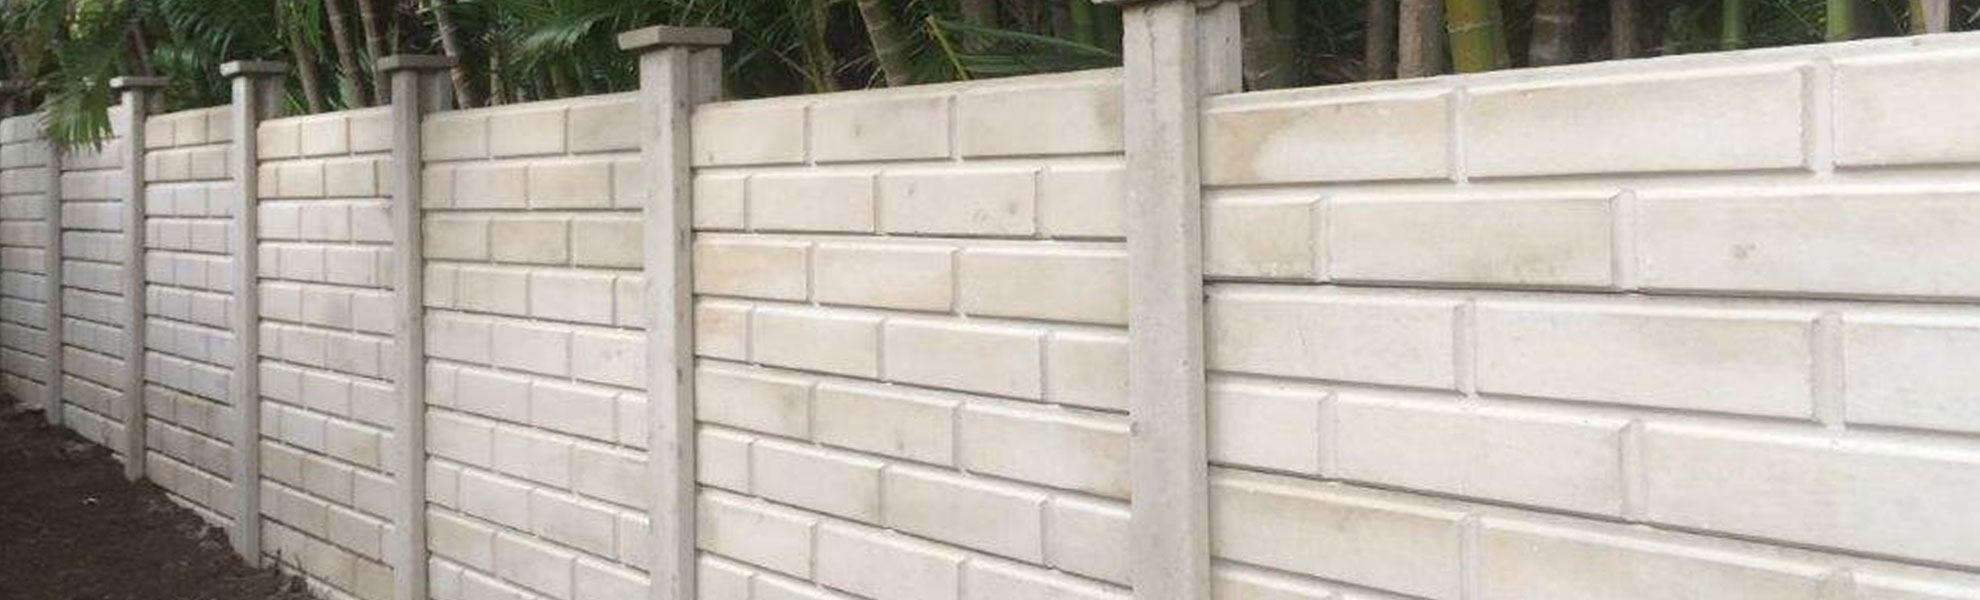 Port shepstone Precast is the best local supplier for precast concrete fencing